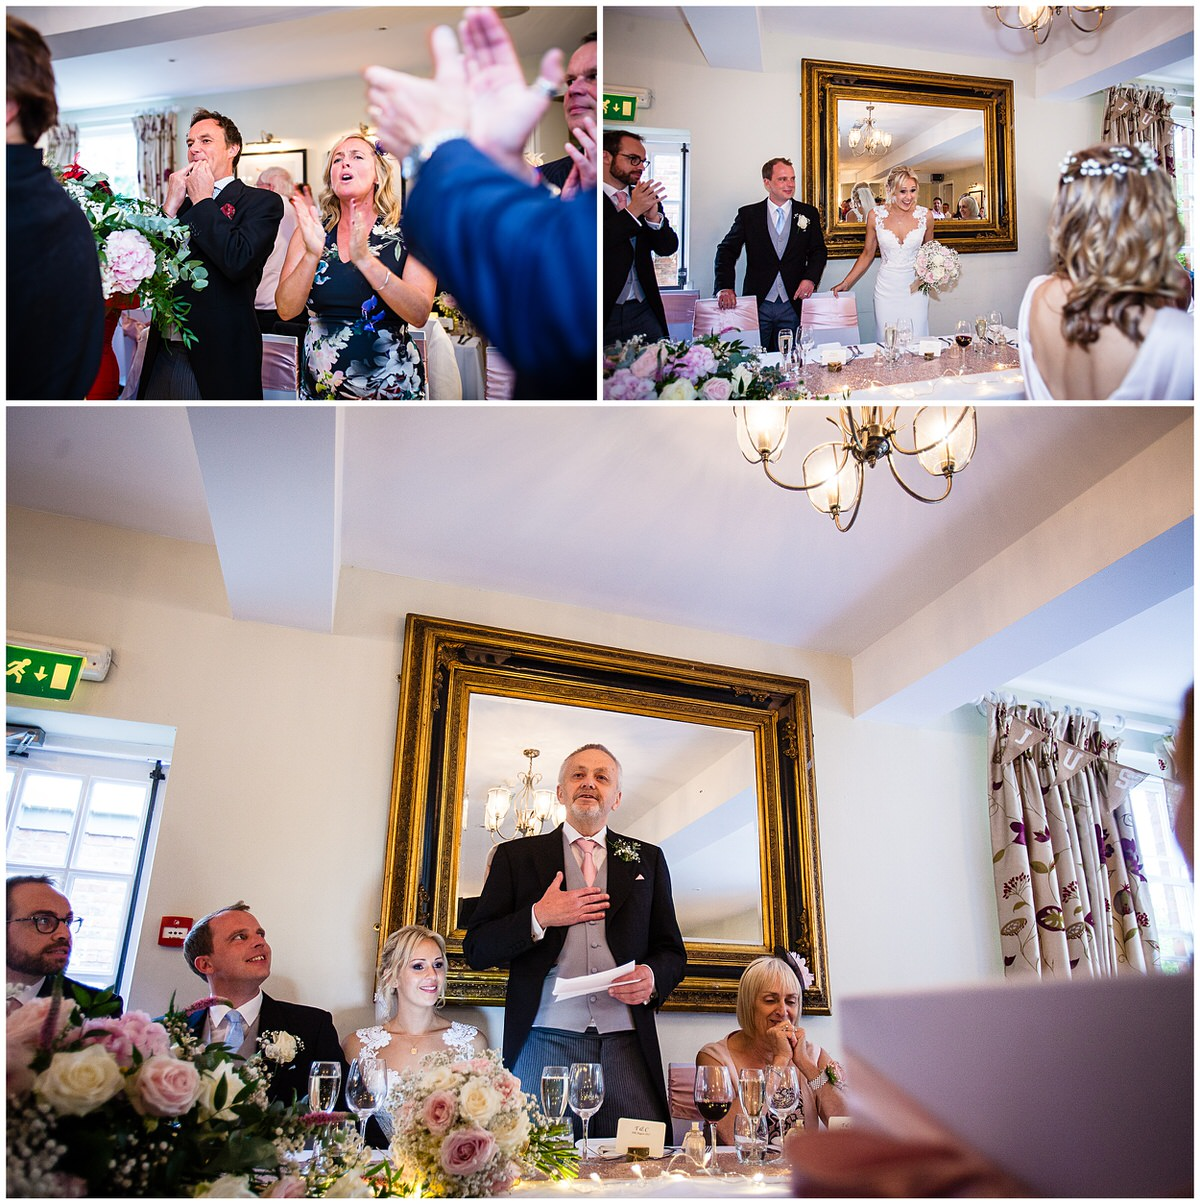 bride and groom entering the wedding breakfast and guests are cheering